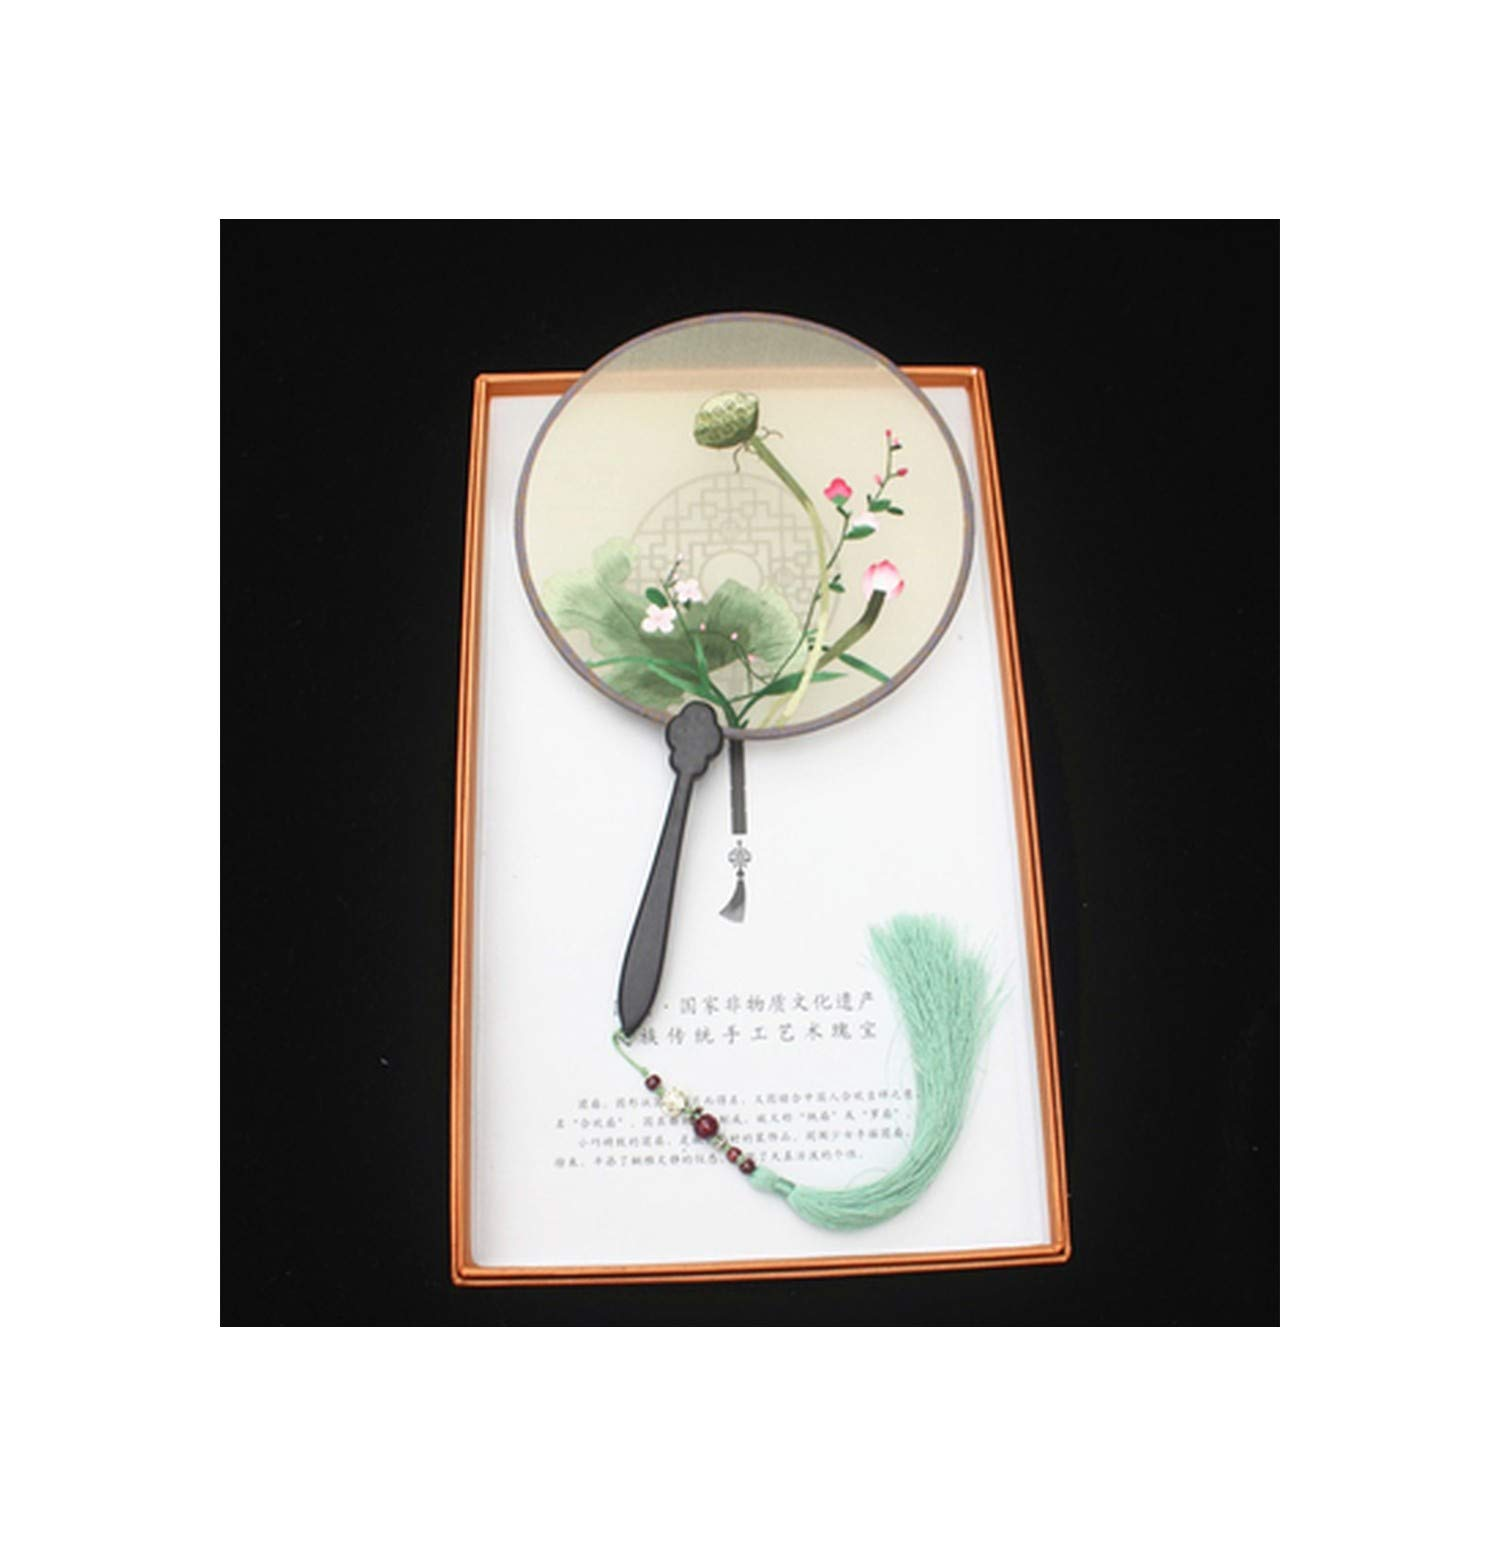 Candye Su Embroidery Finished Hand-Embroidered Fan Suzhou Embroidery Boutique Silk Hand Holding Fan,Number 41 by Candye